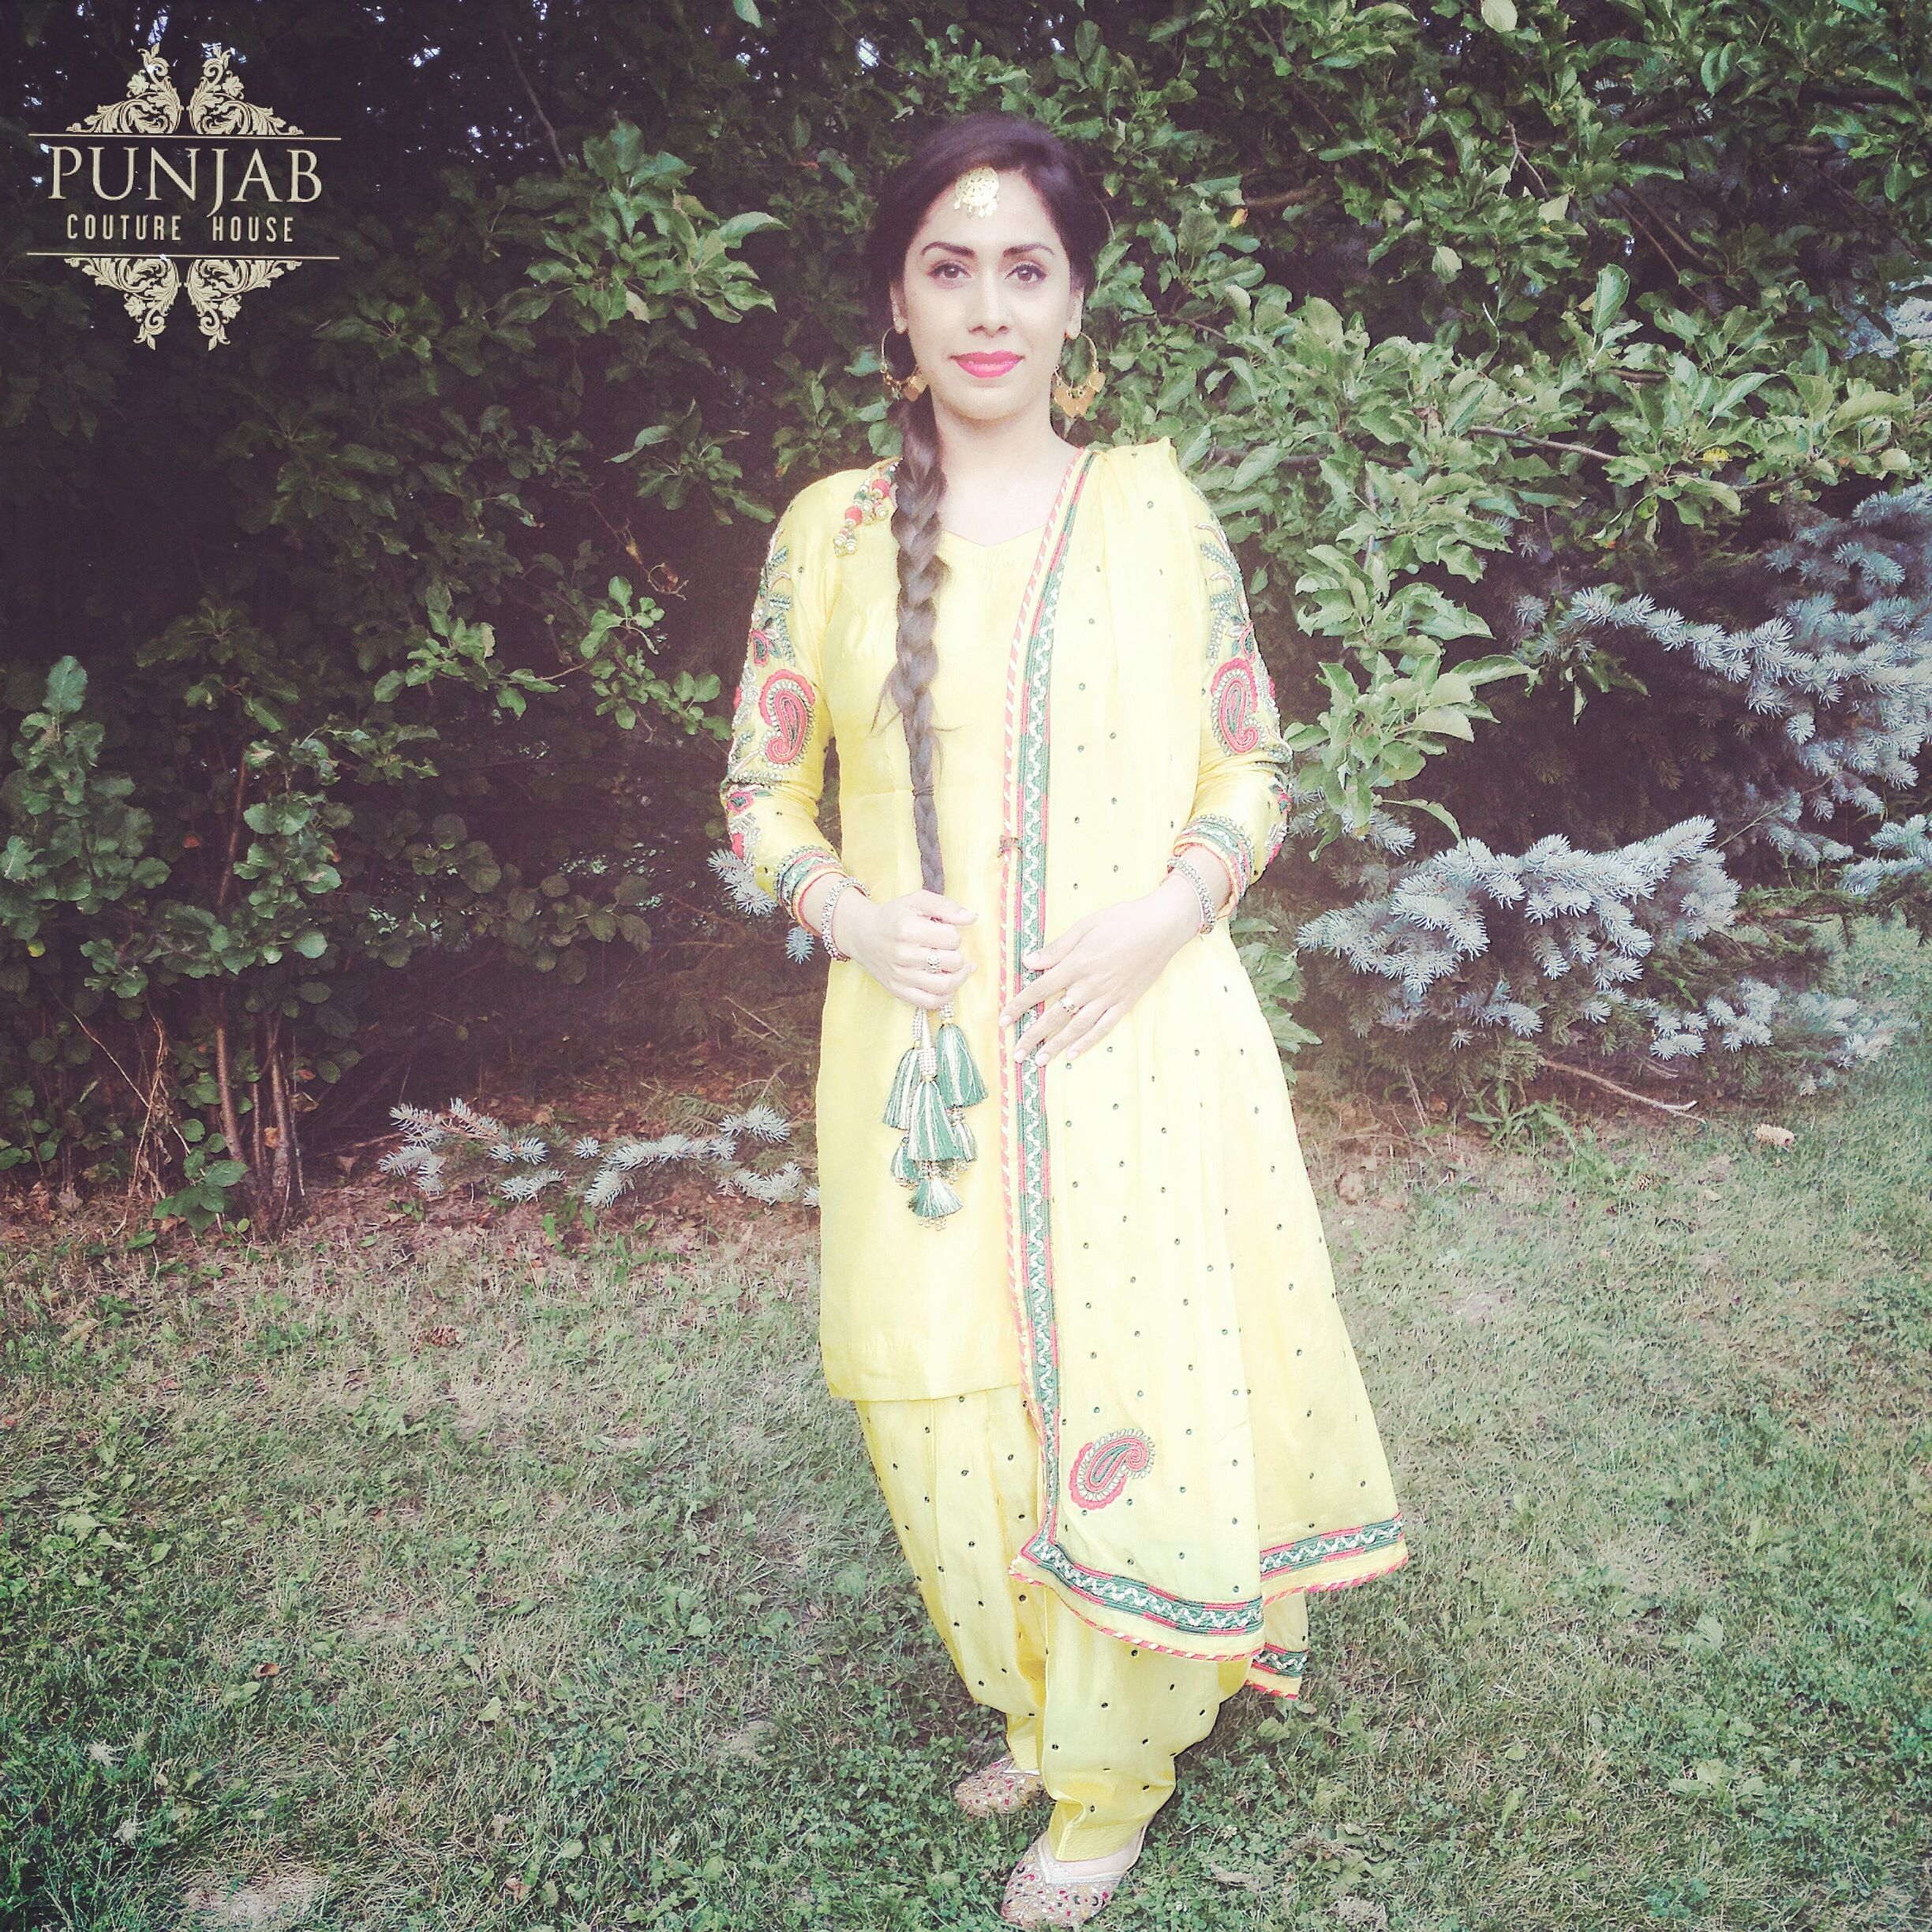 Traditional Outfits: Perfect for ladies sangeets and mehndi parties! Email us to get more info @ punjabcouturehouse@gmail.com